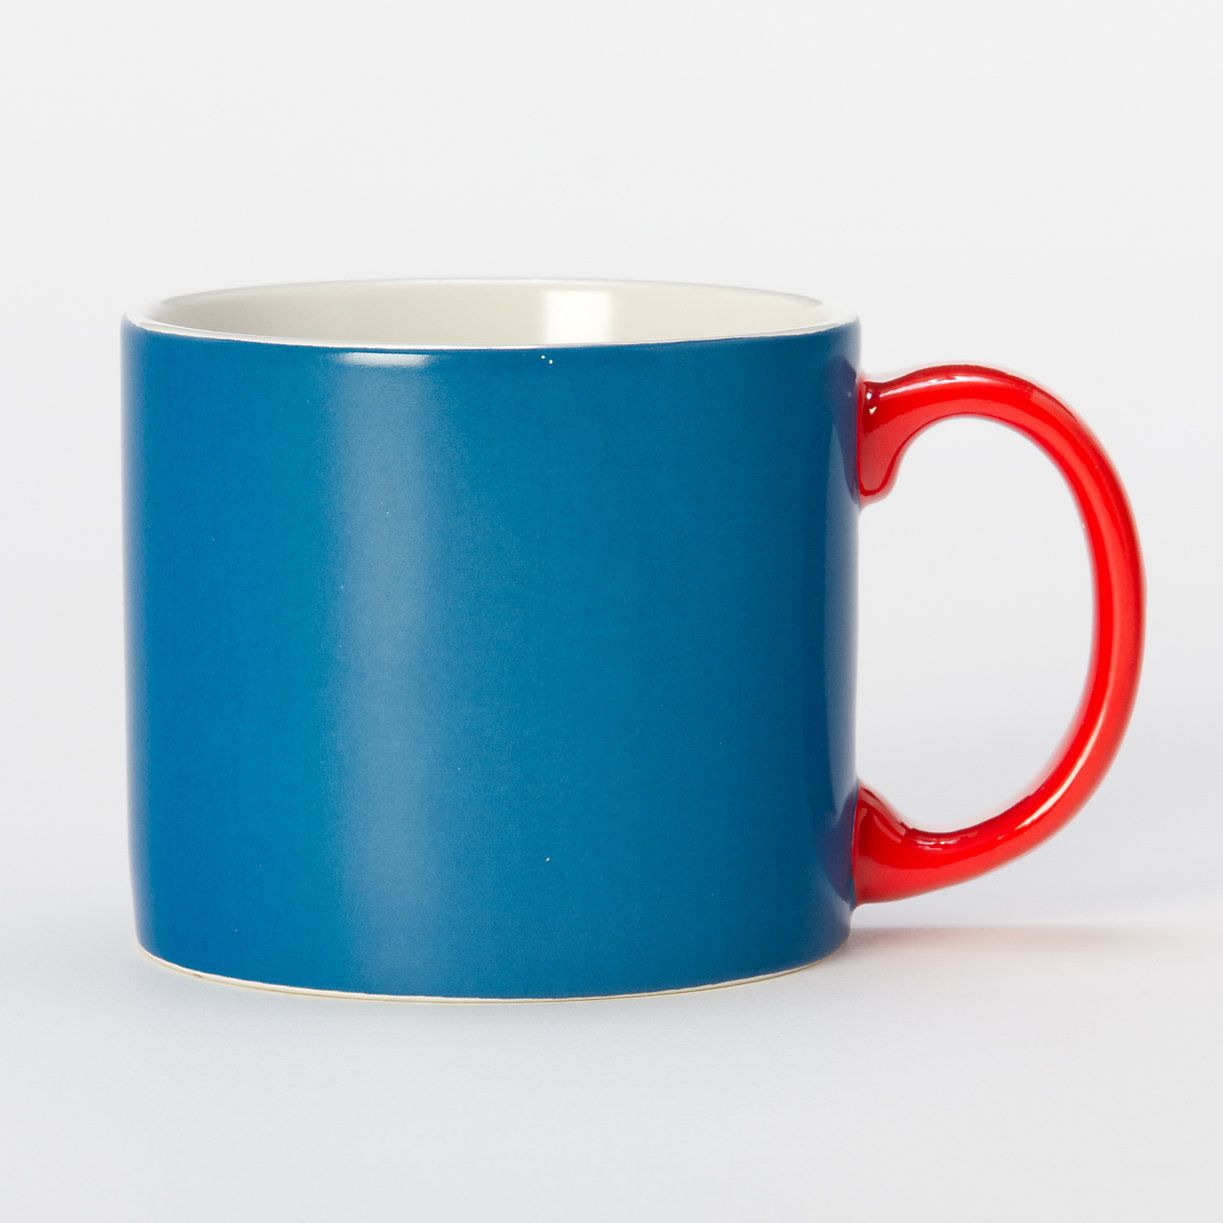 Blue Two-Tone Mug | Kitchen dining, Dinnerware and Dining